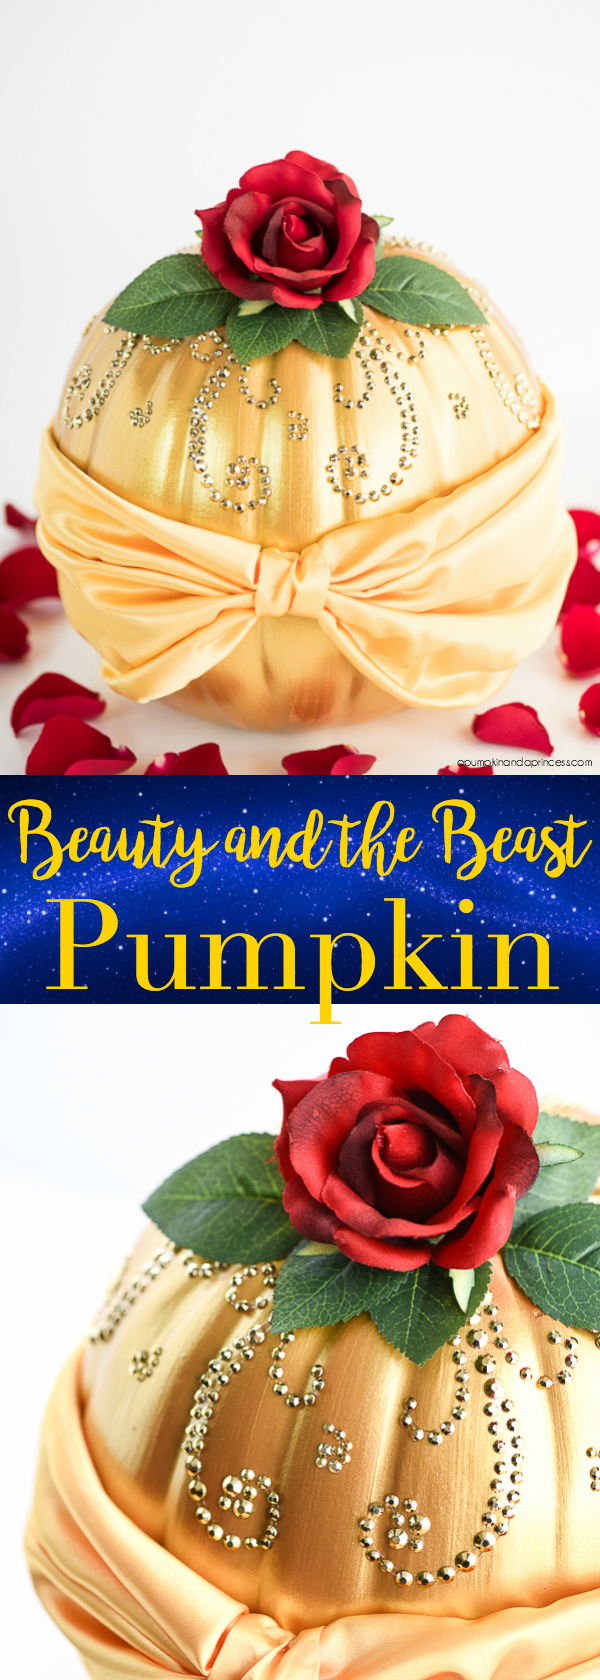 Diy beauty and the beast belle pumpkin diy beauty and the beast belle pumpkin how to make a disney princess belle pumpkin inspired by her beautiful dress and the enchanted rose izmirmasajfo